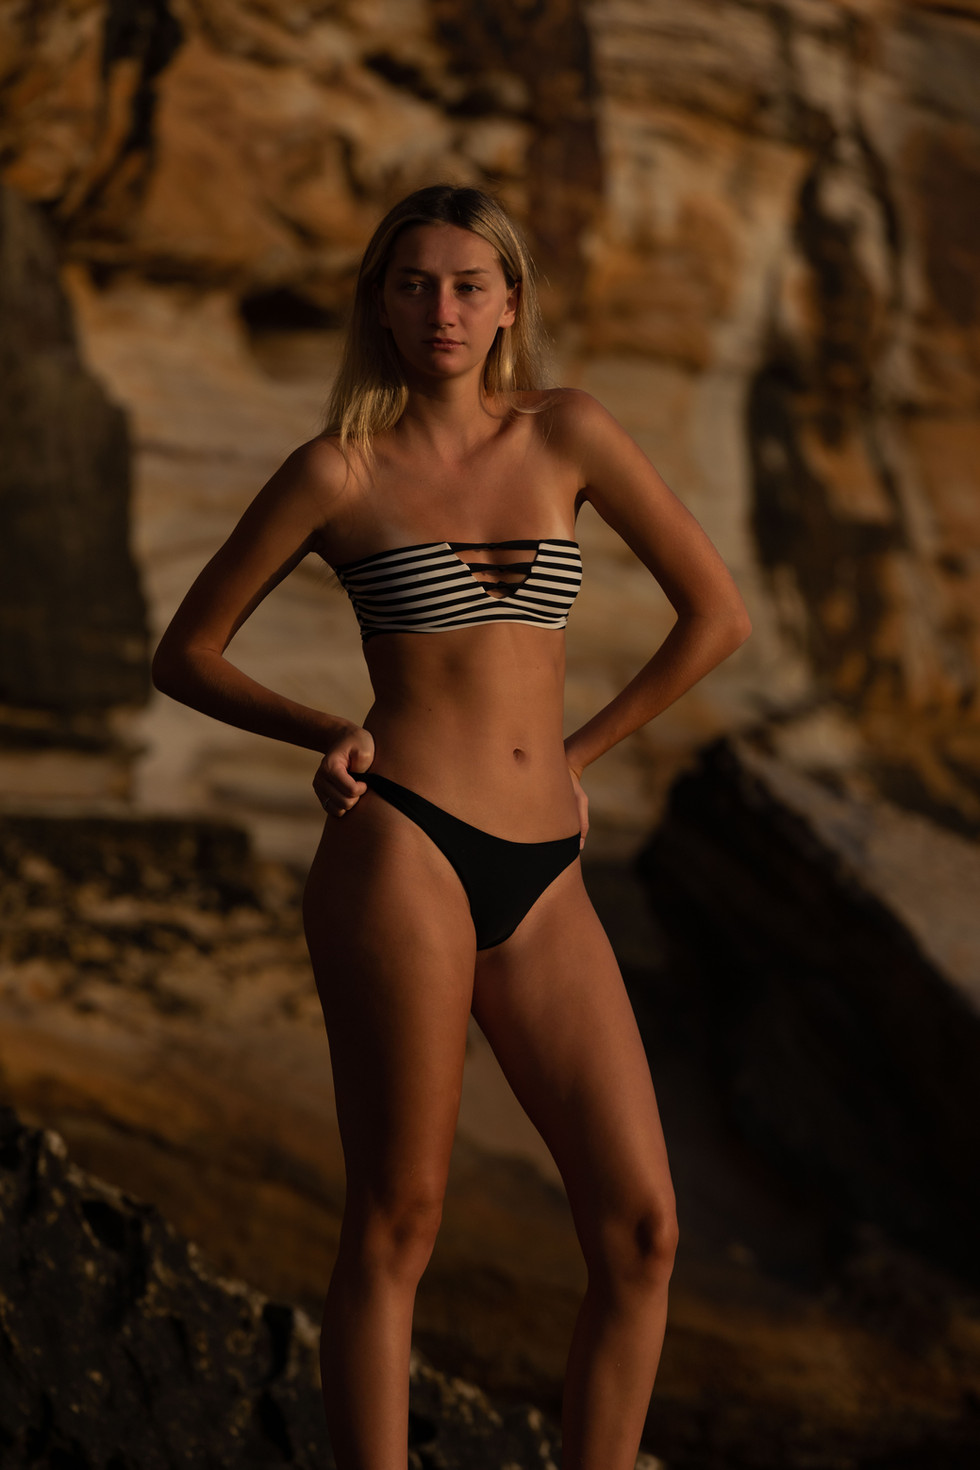 Annabelle_by_CoogeePhotography-IMGL9248-